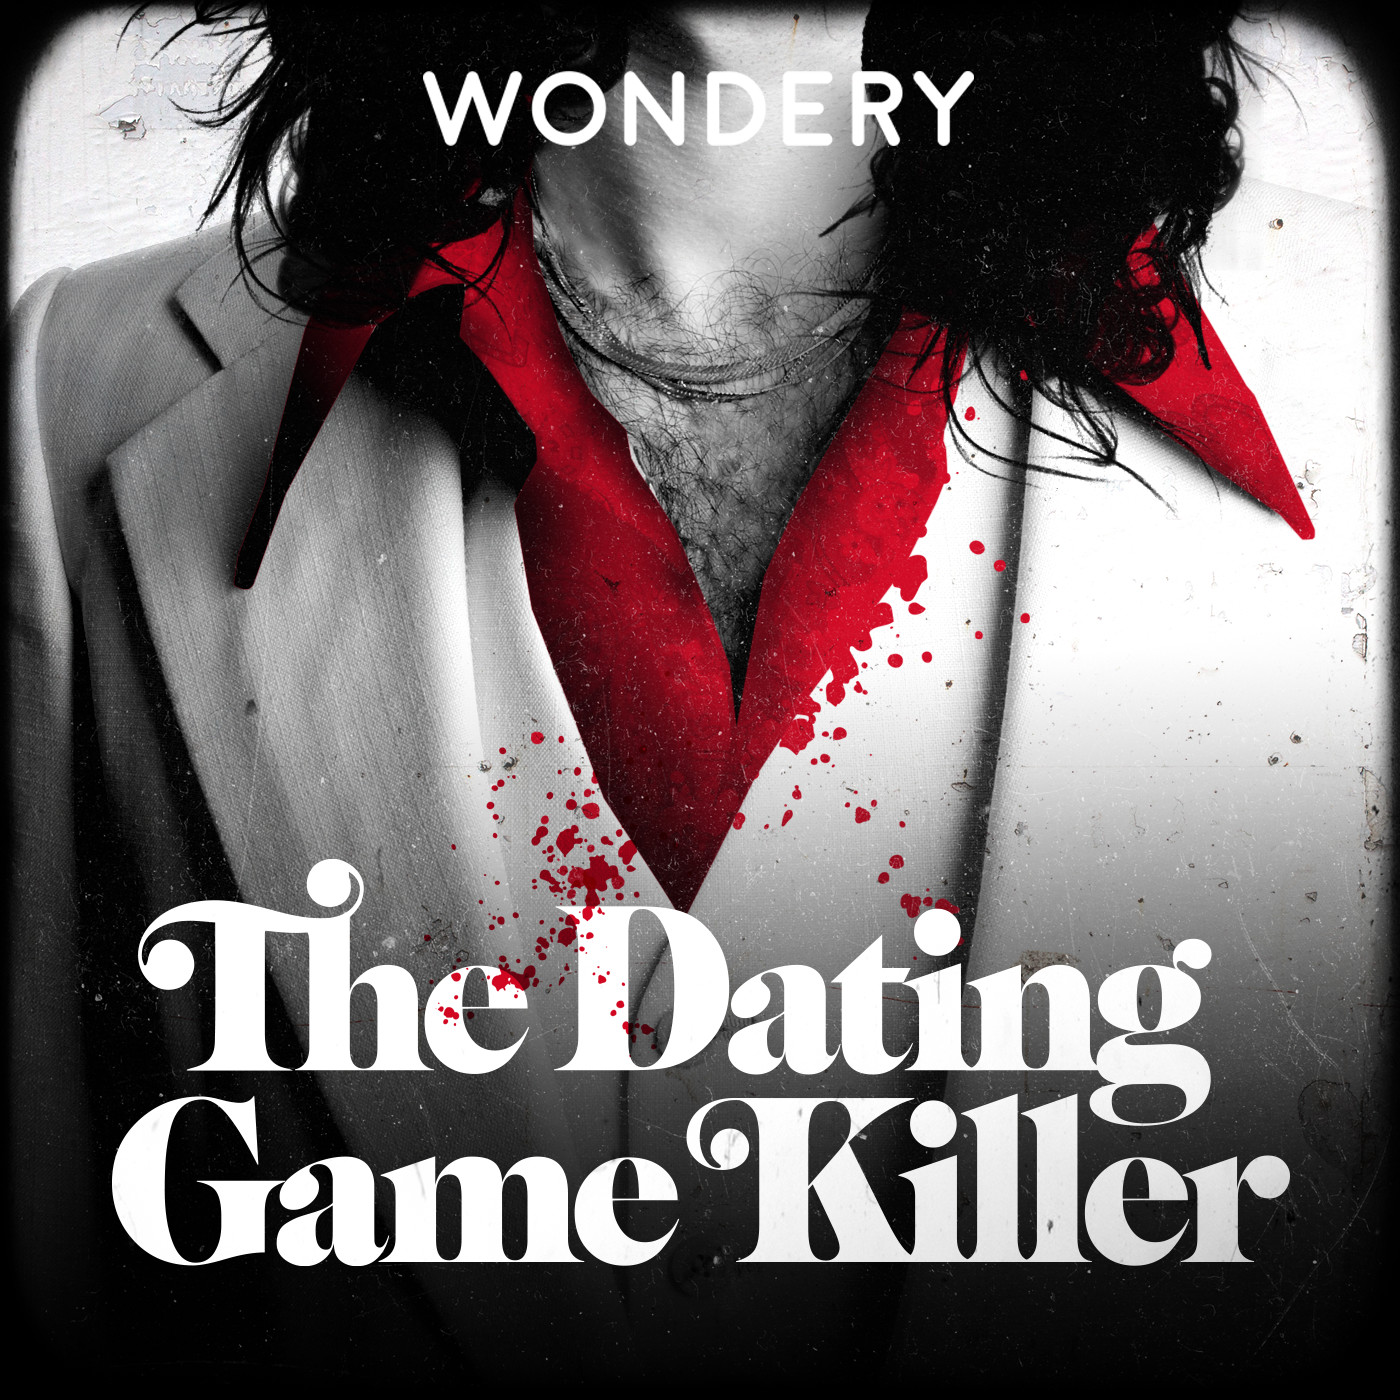 The dating game killer podcast logo